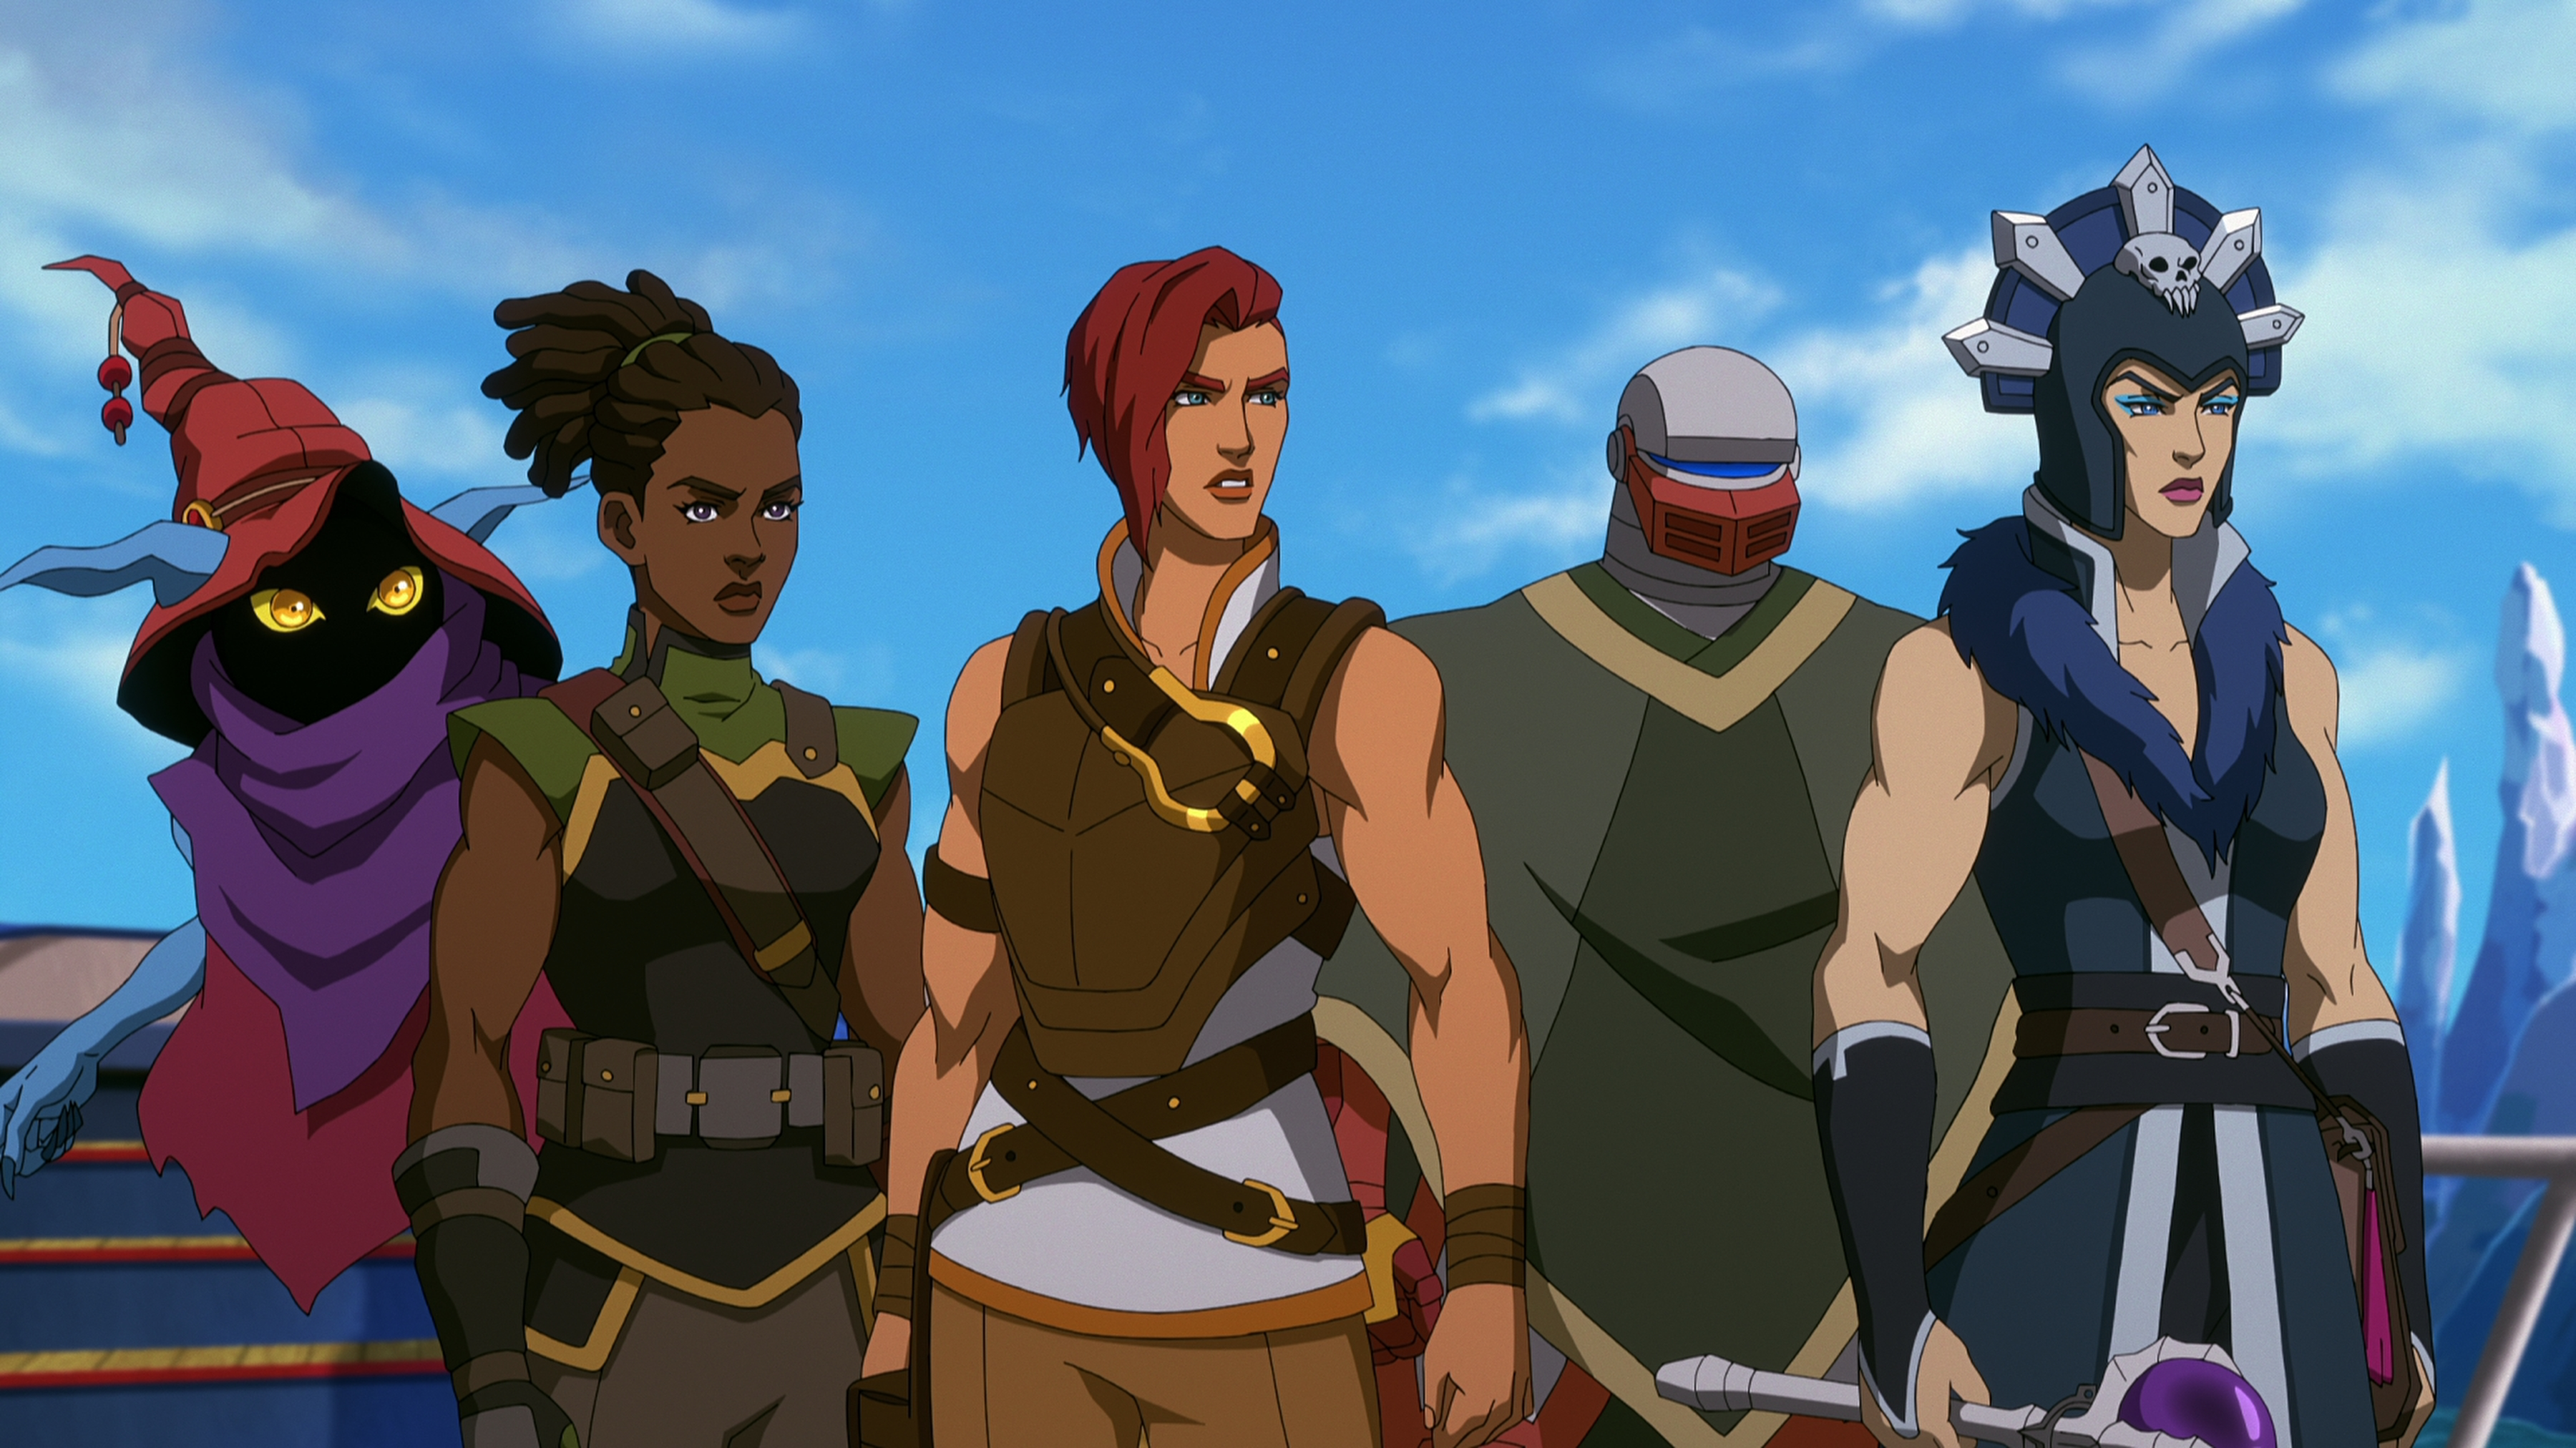 In a CG animated still from Masters of the Universe: Revelation, Orko, Andra, Teela, Roboto and Evil-Lyn stand in a line looking off to their left, serious expressions on their faces. Orko floats mid-air, blue arms and ears visible with face shadowed beneath a red hat and purple scarf. Andra, a dark-skinned female, wears a brown and green military style uniform, hair pulled back. Teela, a light-skinned female with short auburn hair, wears a white top with a brown chest plate and harness. Roboto, a gray robot with a red mouth piece, wears a green cloak. Evil-Lyn, a light-skinned female, wears a blue and silver headpiece with a skull in the center and a blue and brown military style uniform, crystal-orb wand in her right hand at her side. A blue sky and icy landscape are visible behind them.